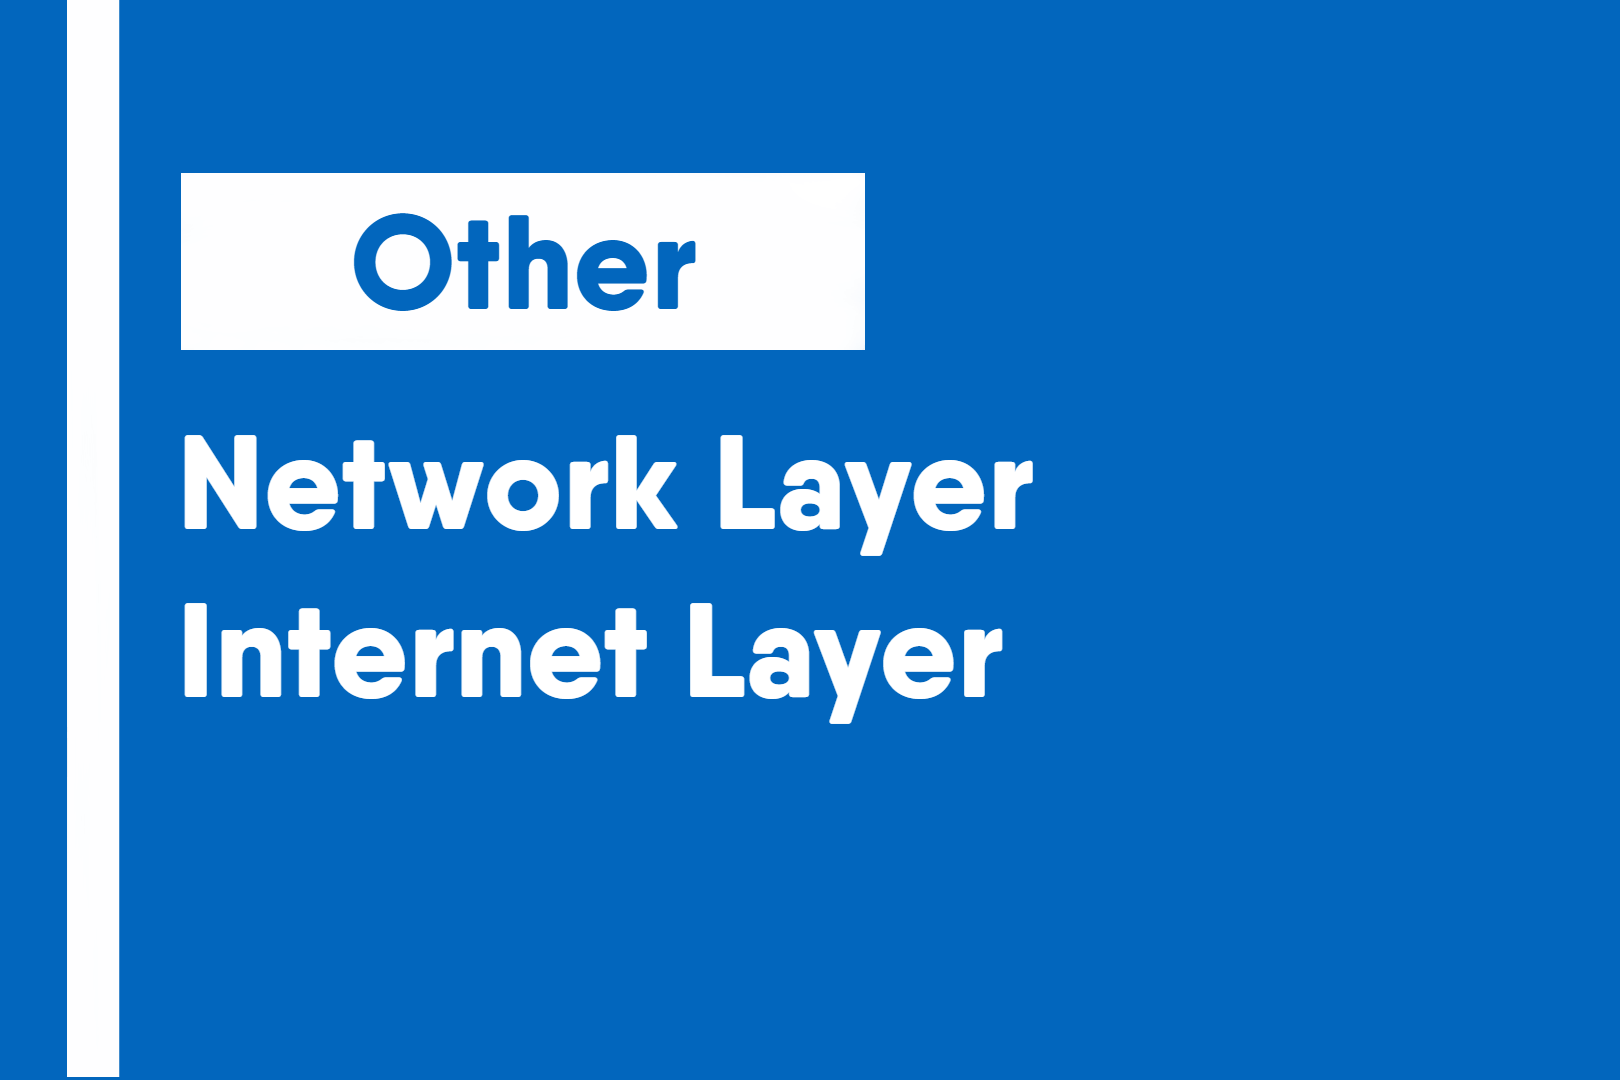 Network Layer Internet Layer